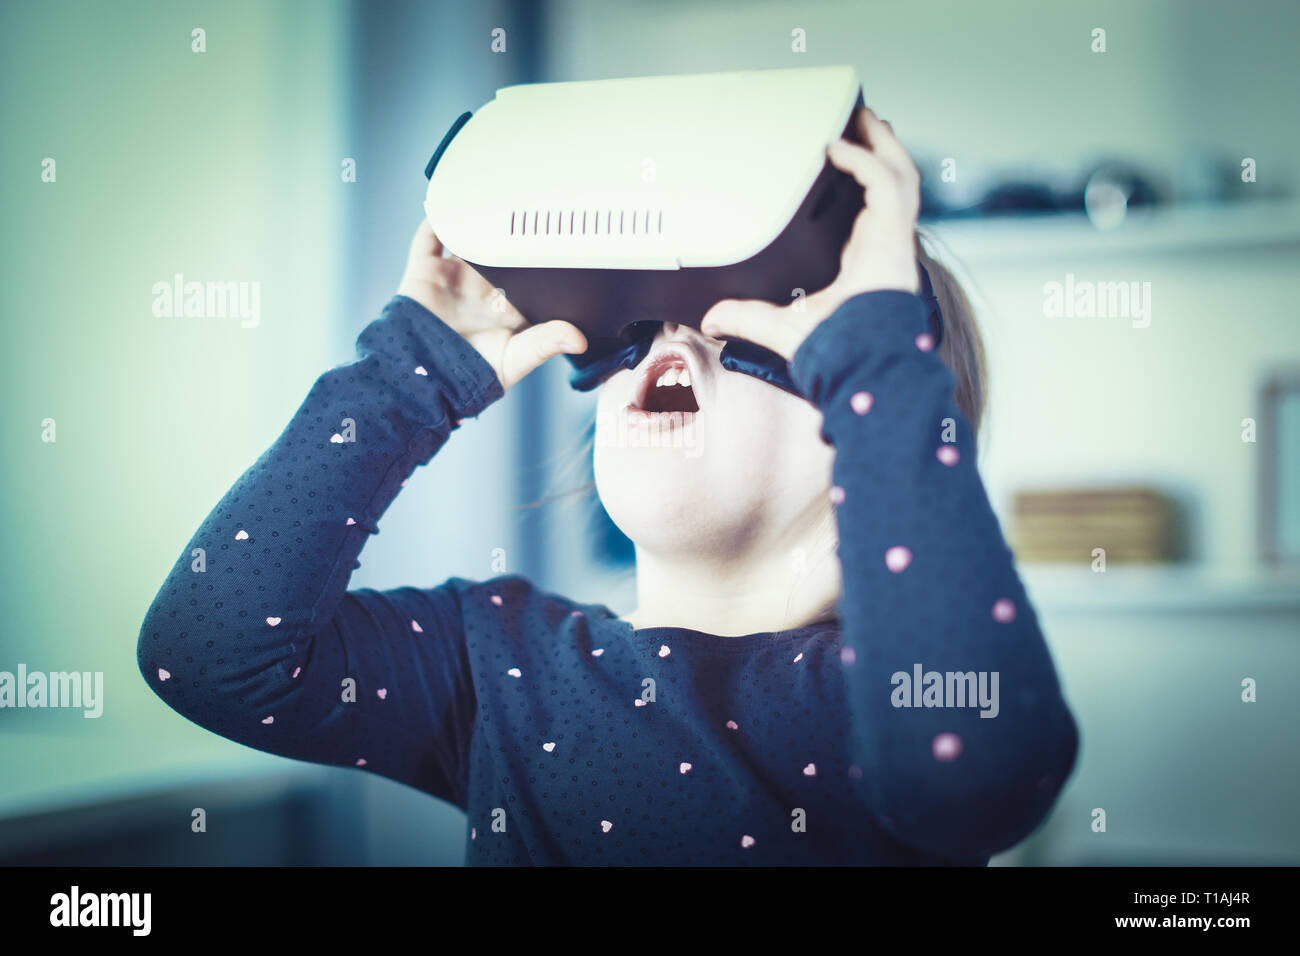 Excited amazed little girl experience looking in VR glasses goggles. - Stock Image